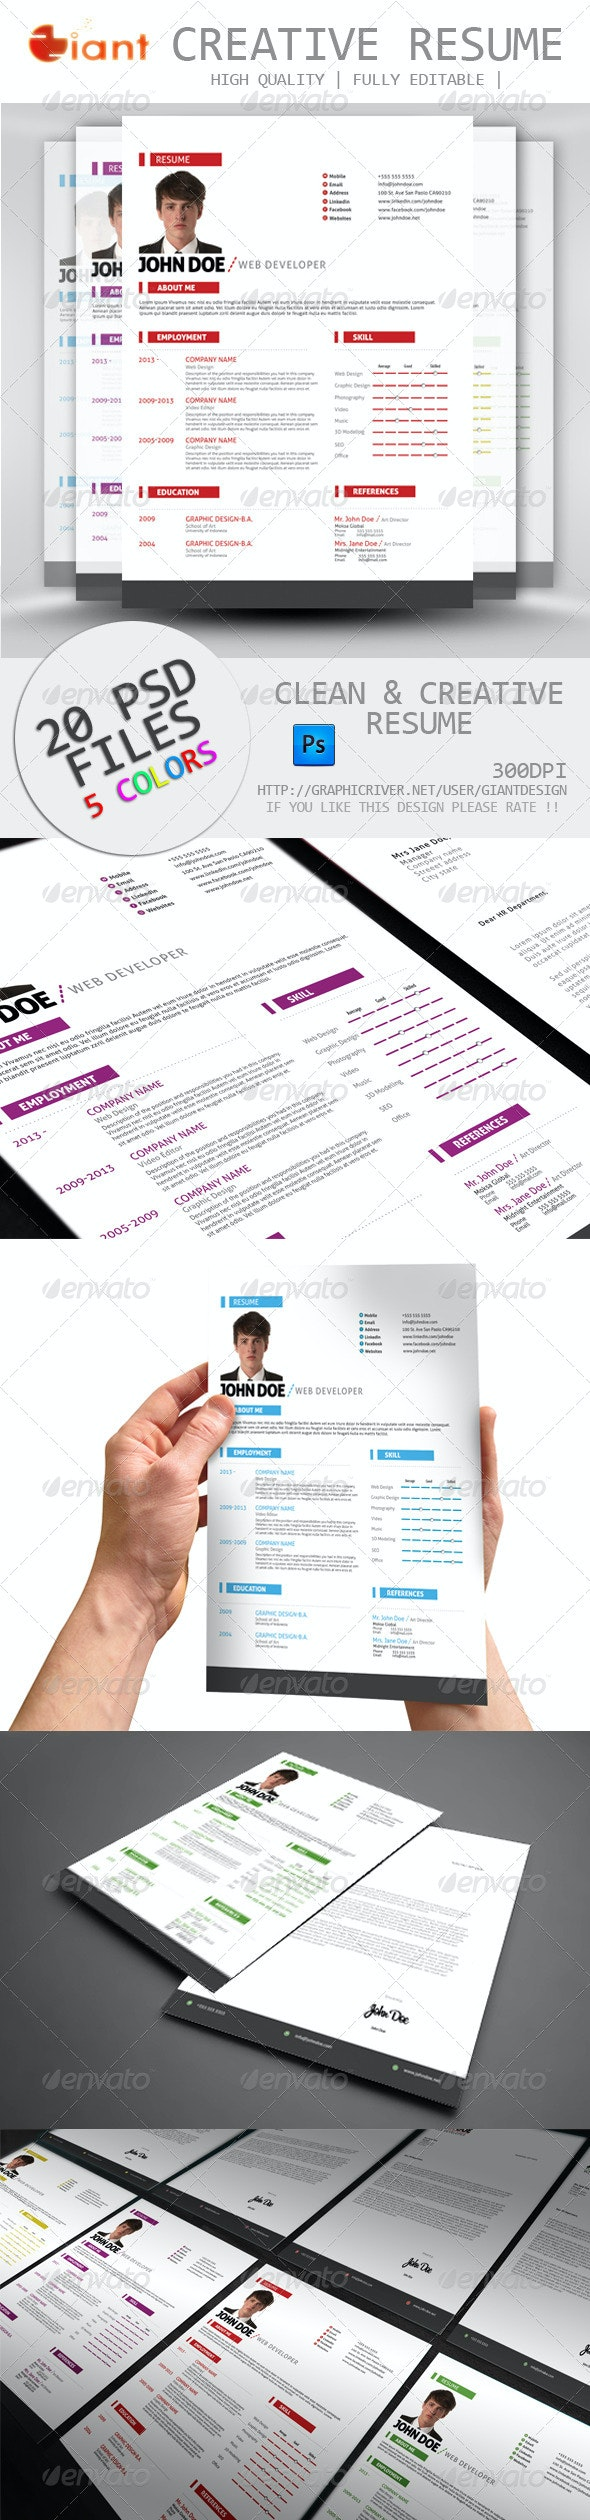 Simple Resume CV Cover Letter - Resumes Stationery